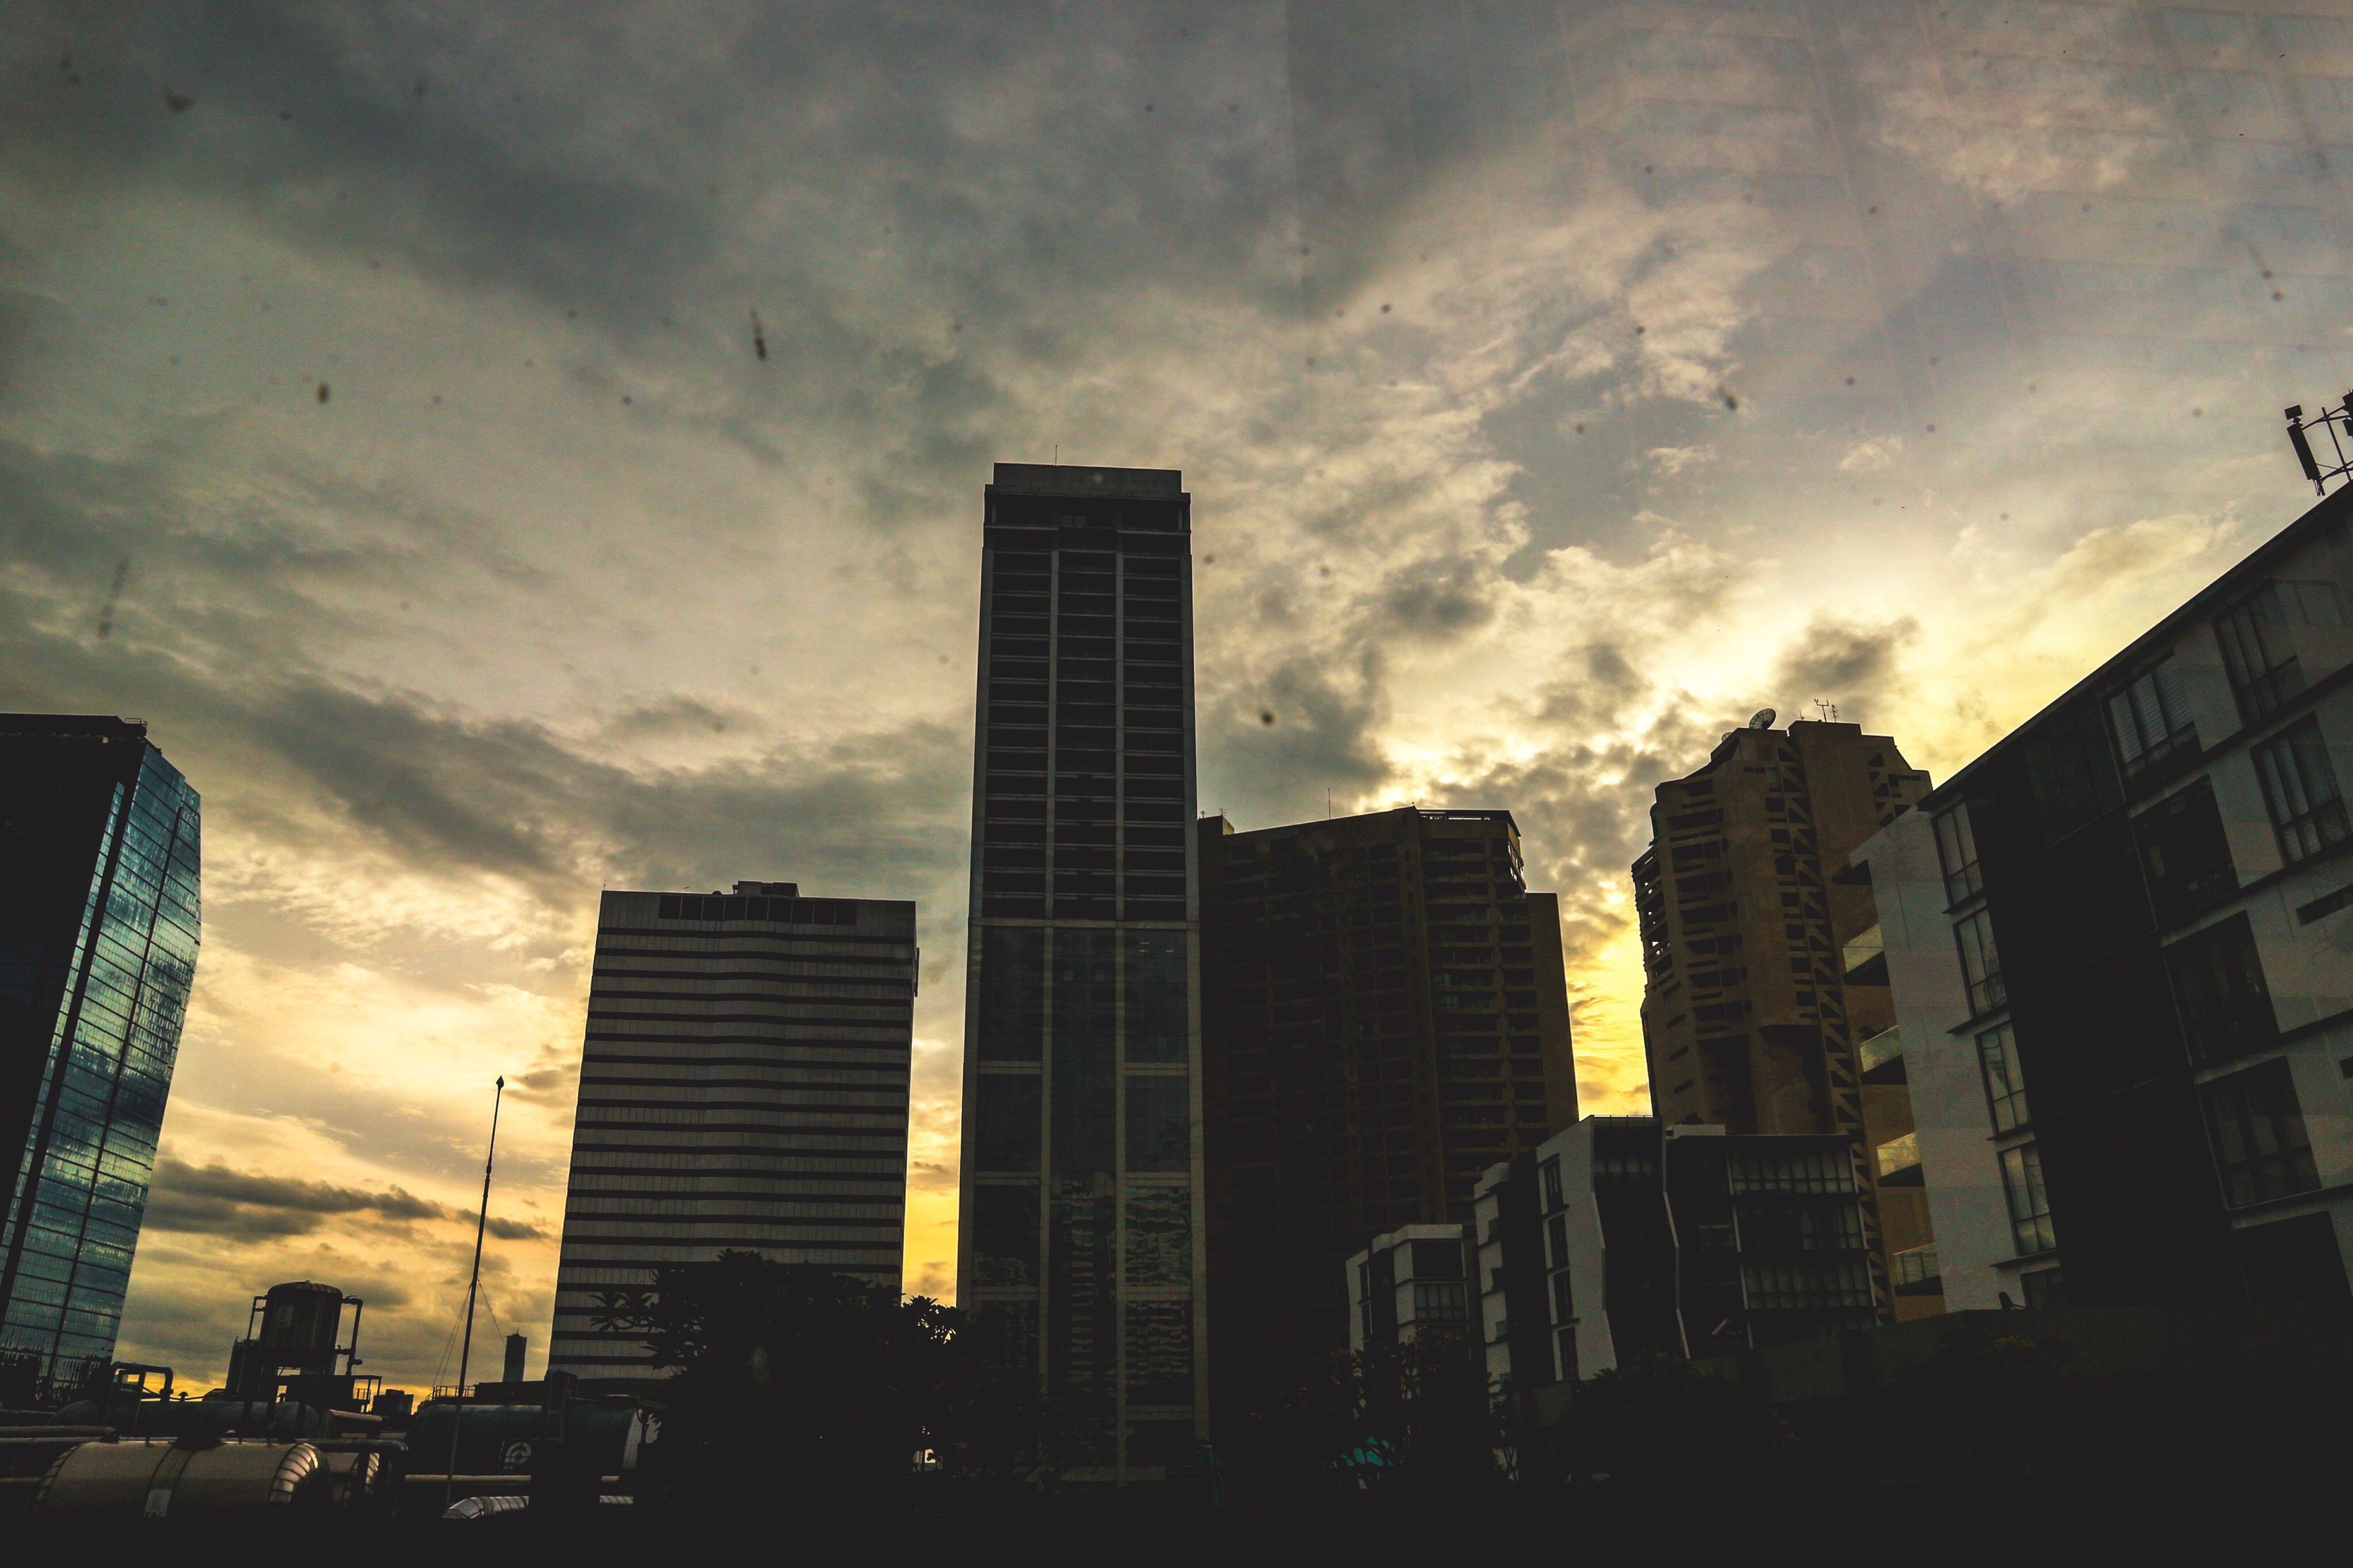 building exterior, architecture, built structure, city, skyscraper, sky, office building, cloud - sky, modern, low angle view, tall - high, sunset, tower, building, urban skyline, cloudy, city life, cloud, cityscape, outdoors, development, skyline, no people, tall, capital cities, weather, overcast, nature